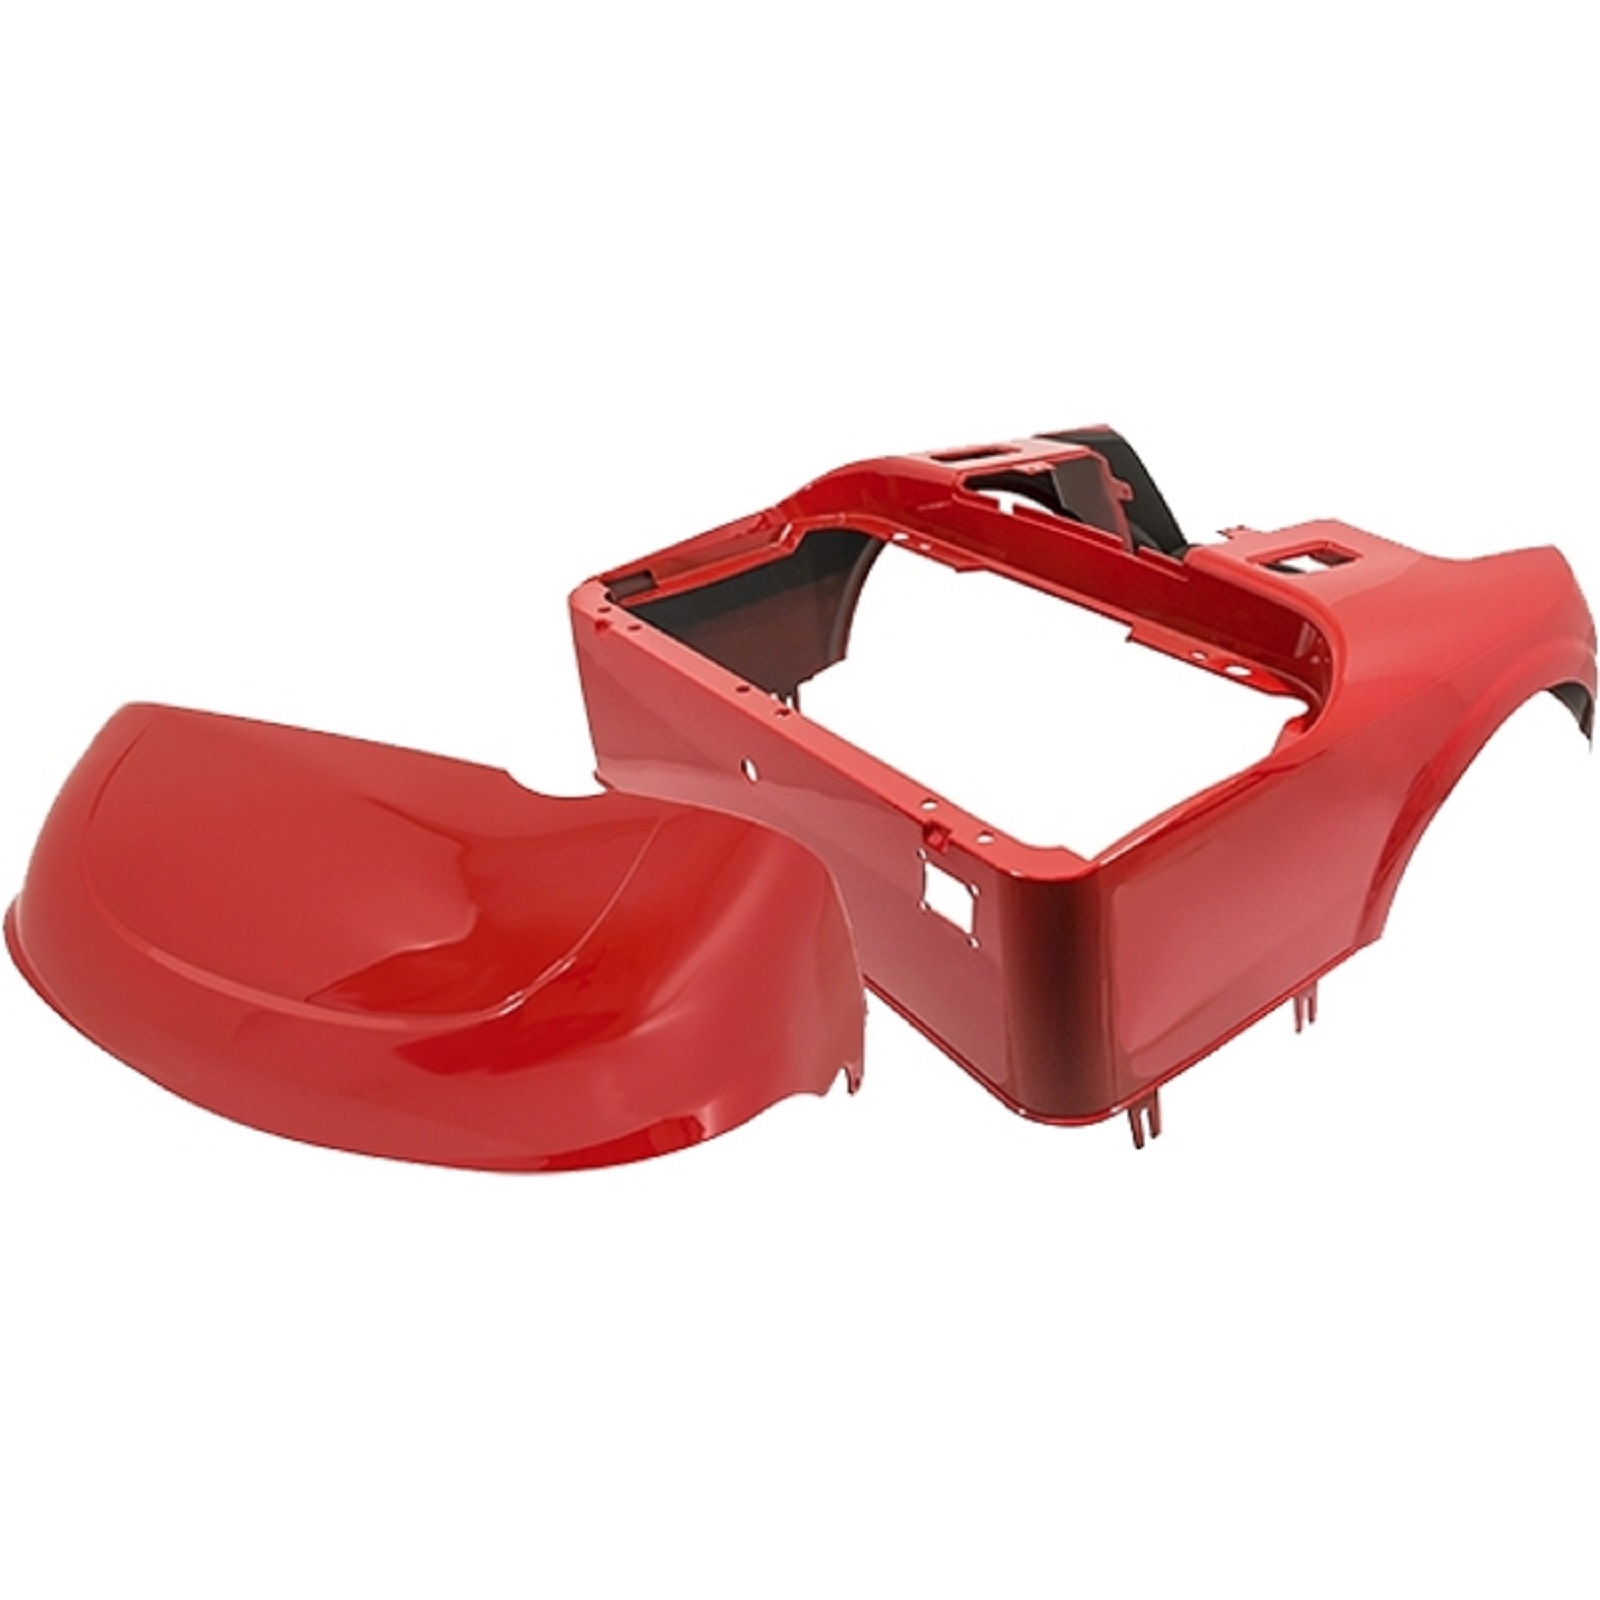 EZGO RXV Golf Cart 2016-Up Front Cowl Rear Body Kit | Metallic Flame Red